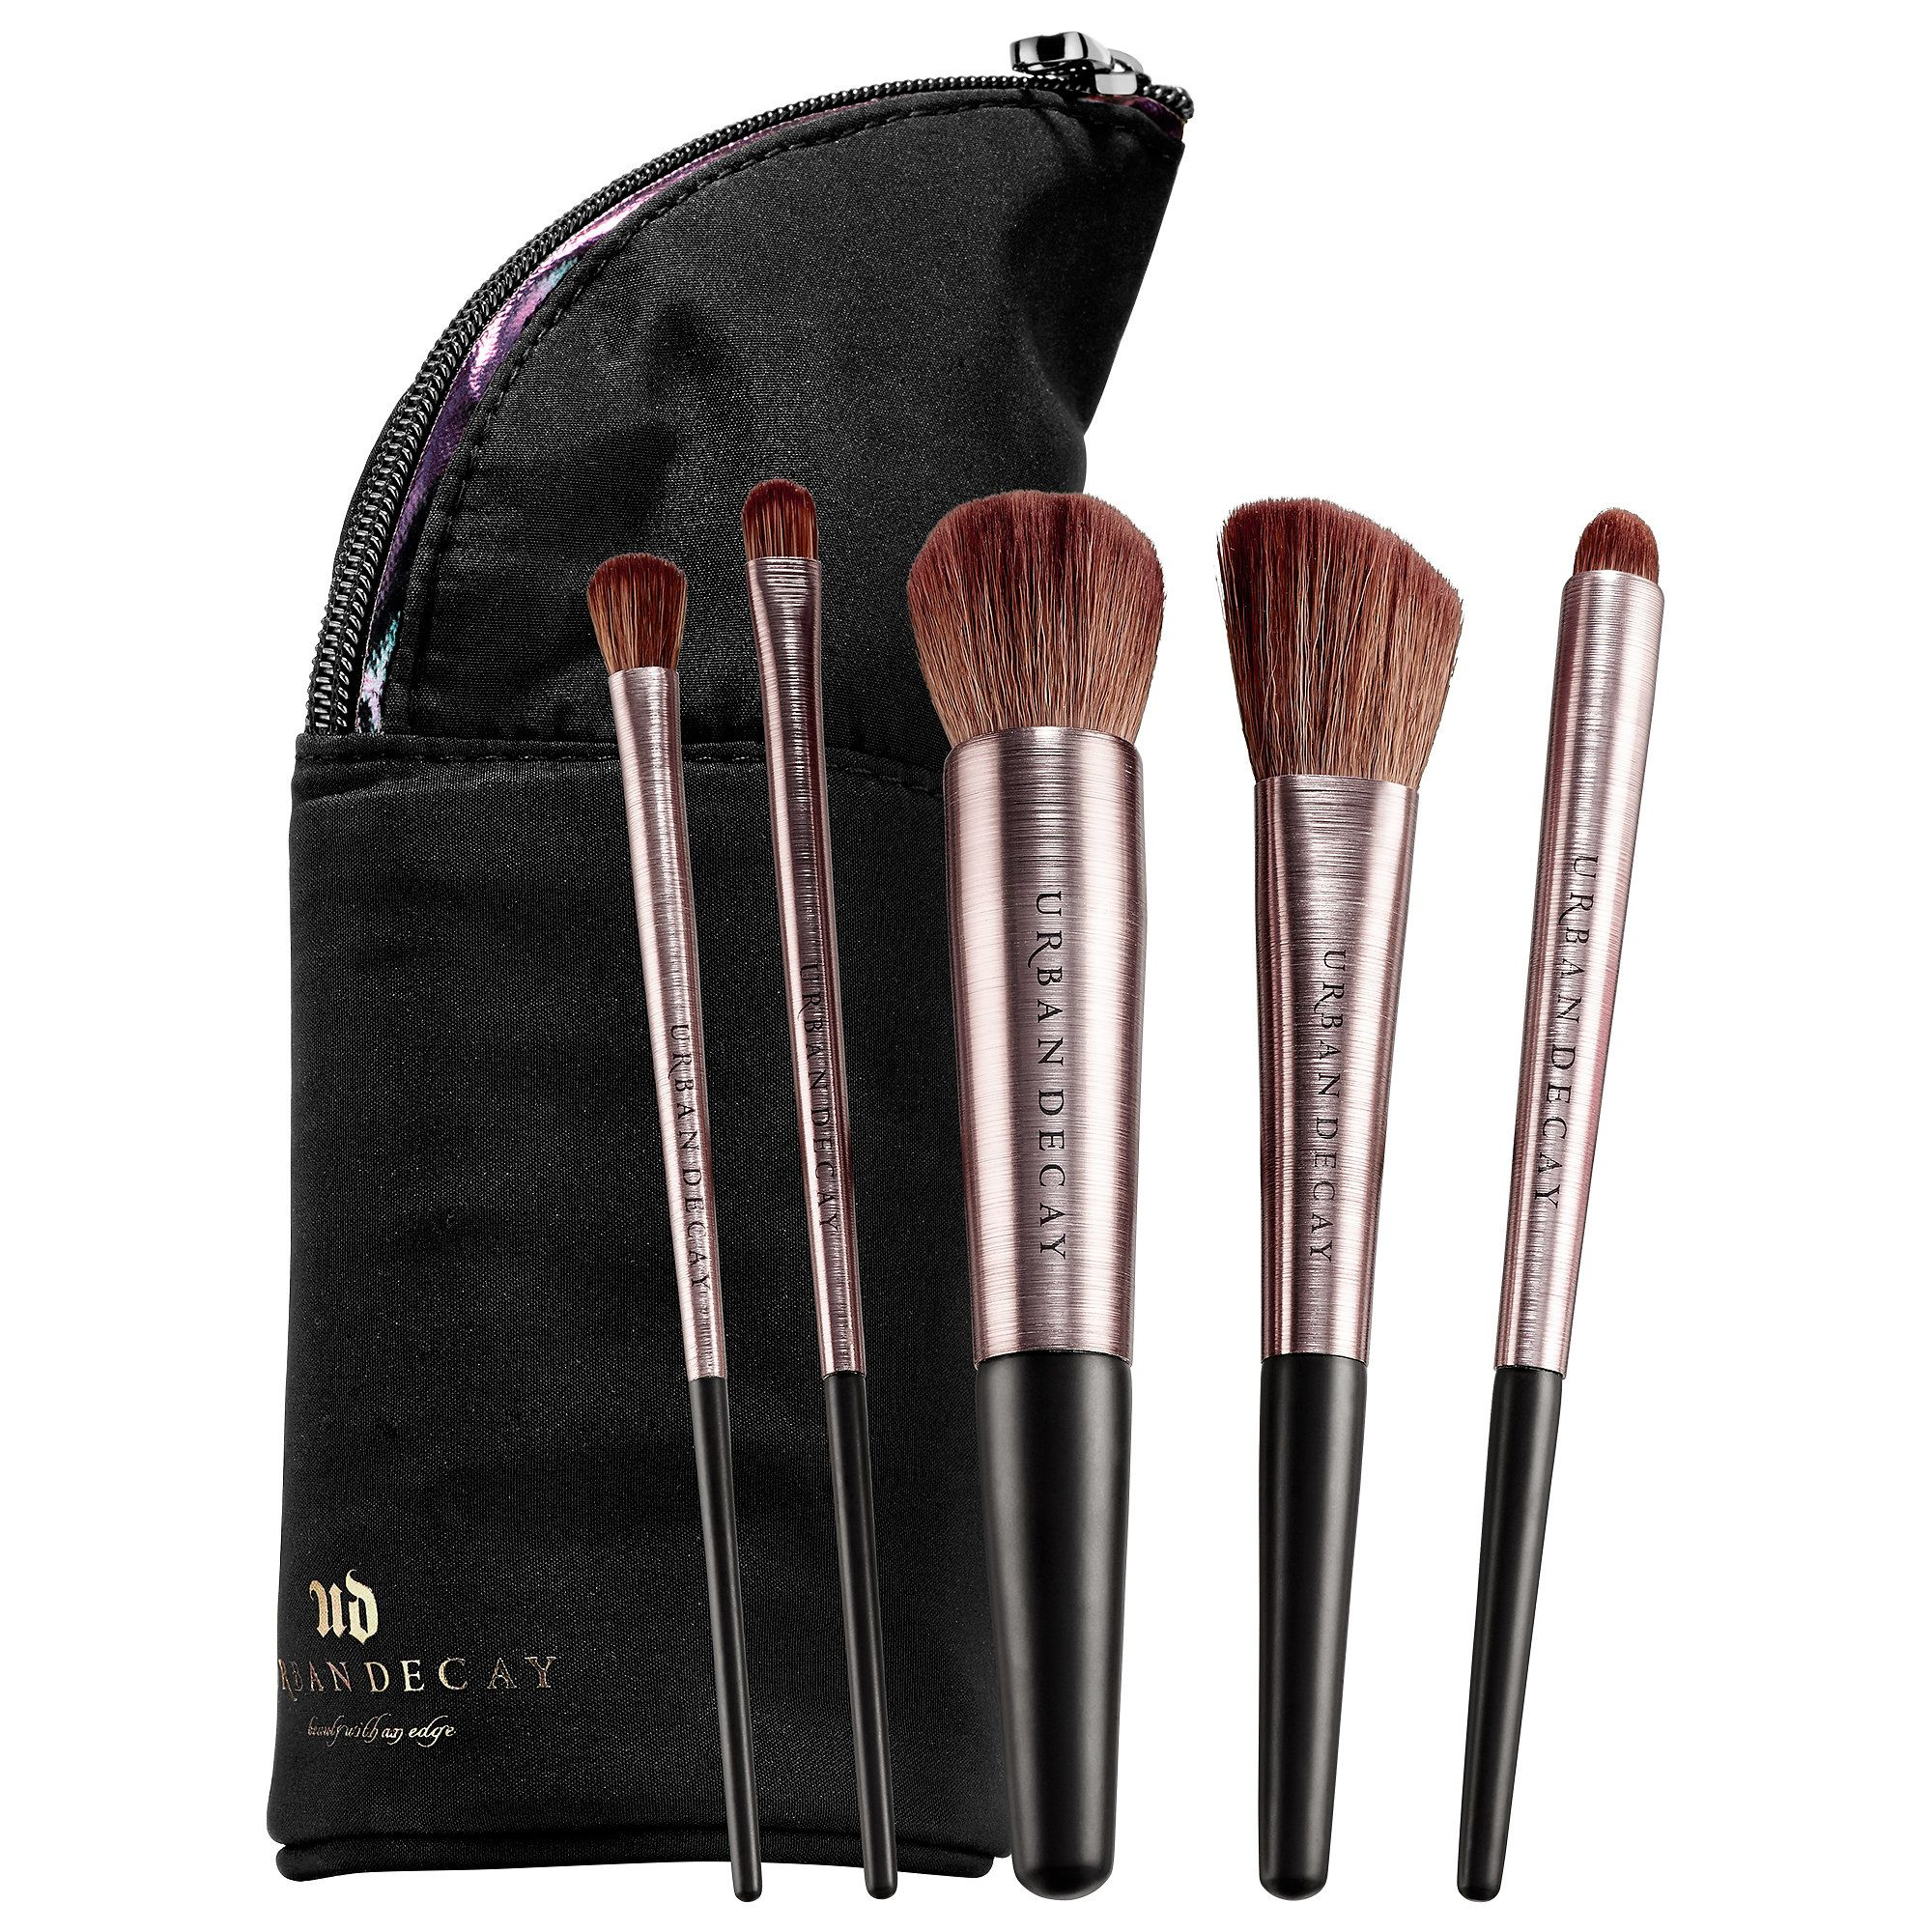 Shop Urban Decay's Pro Essential Brush Stash at Sephora